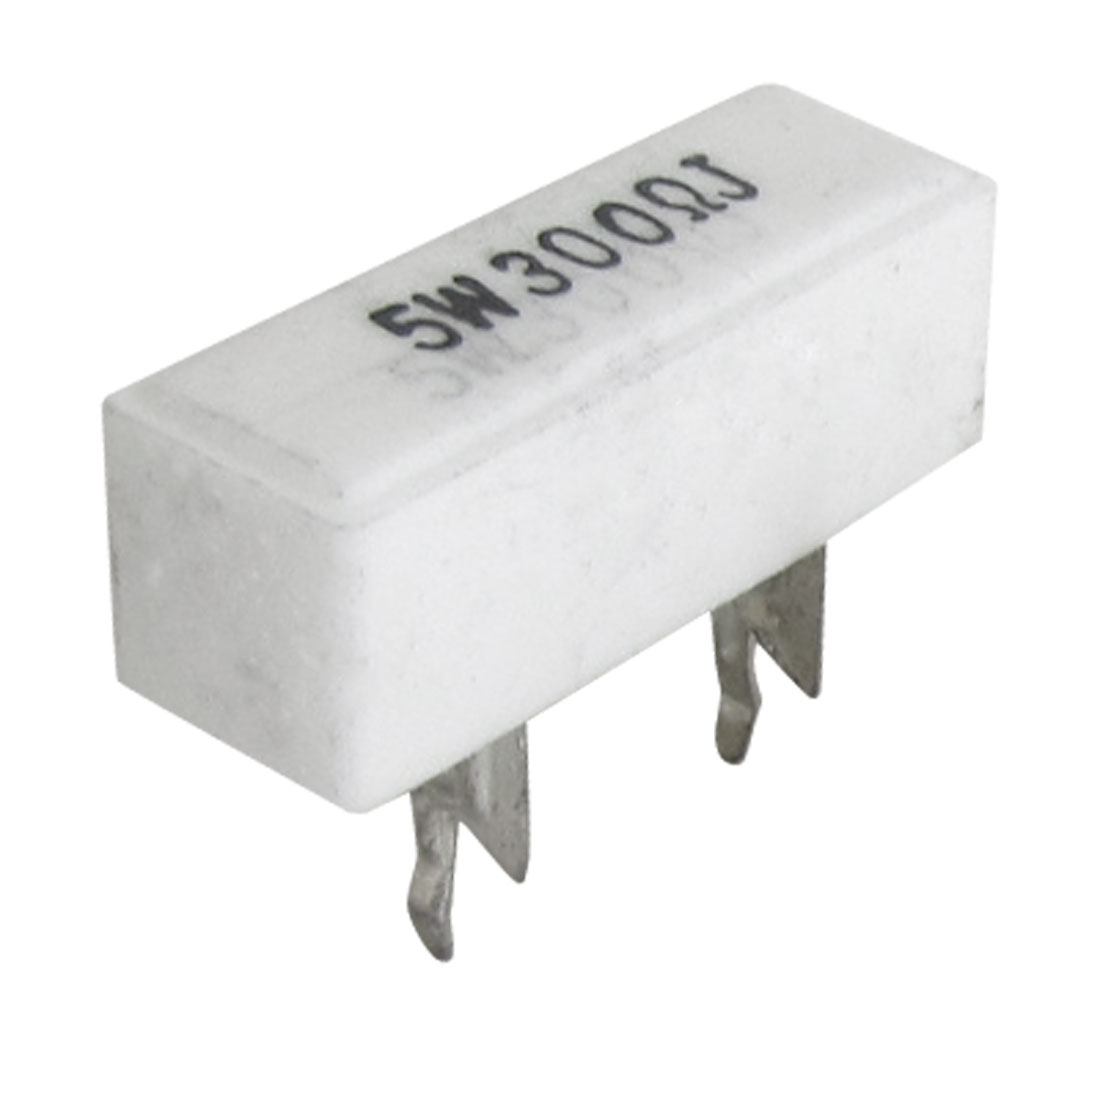 5% 300 Ohm 5W Watt DIP Ceramic Cement Resistors 10 Pcs